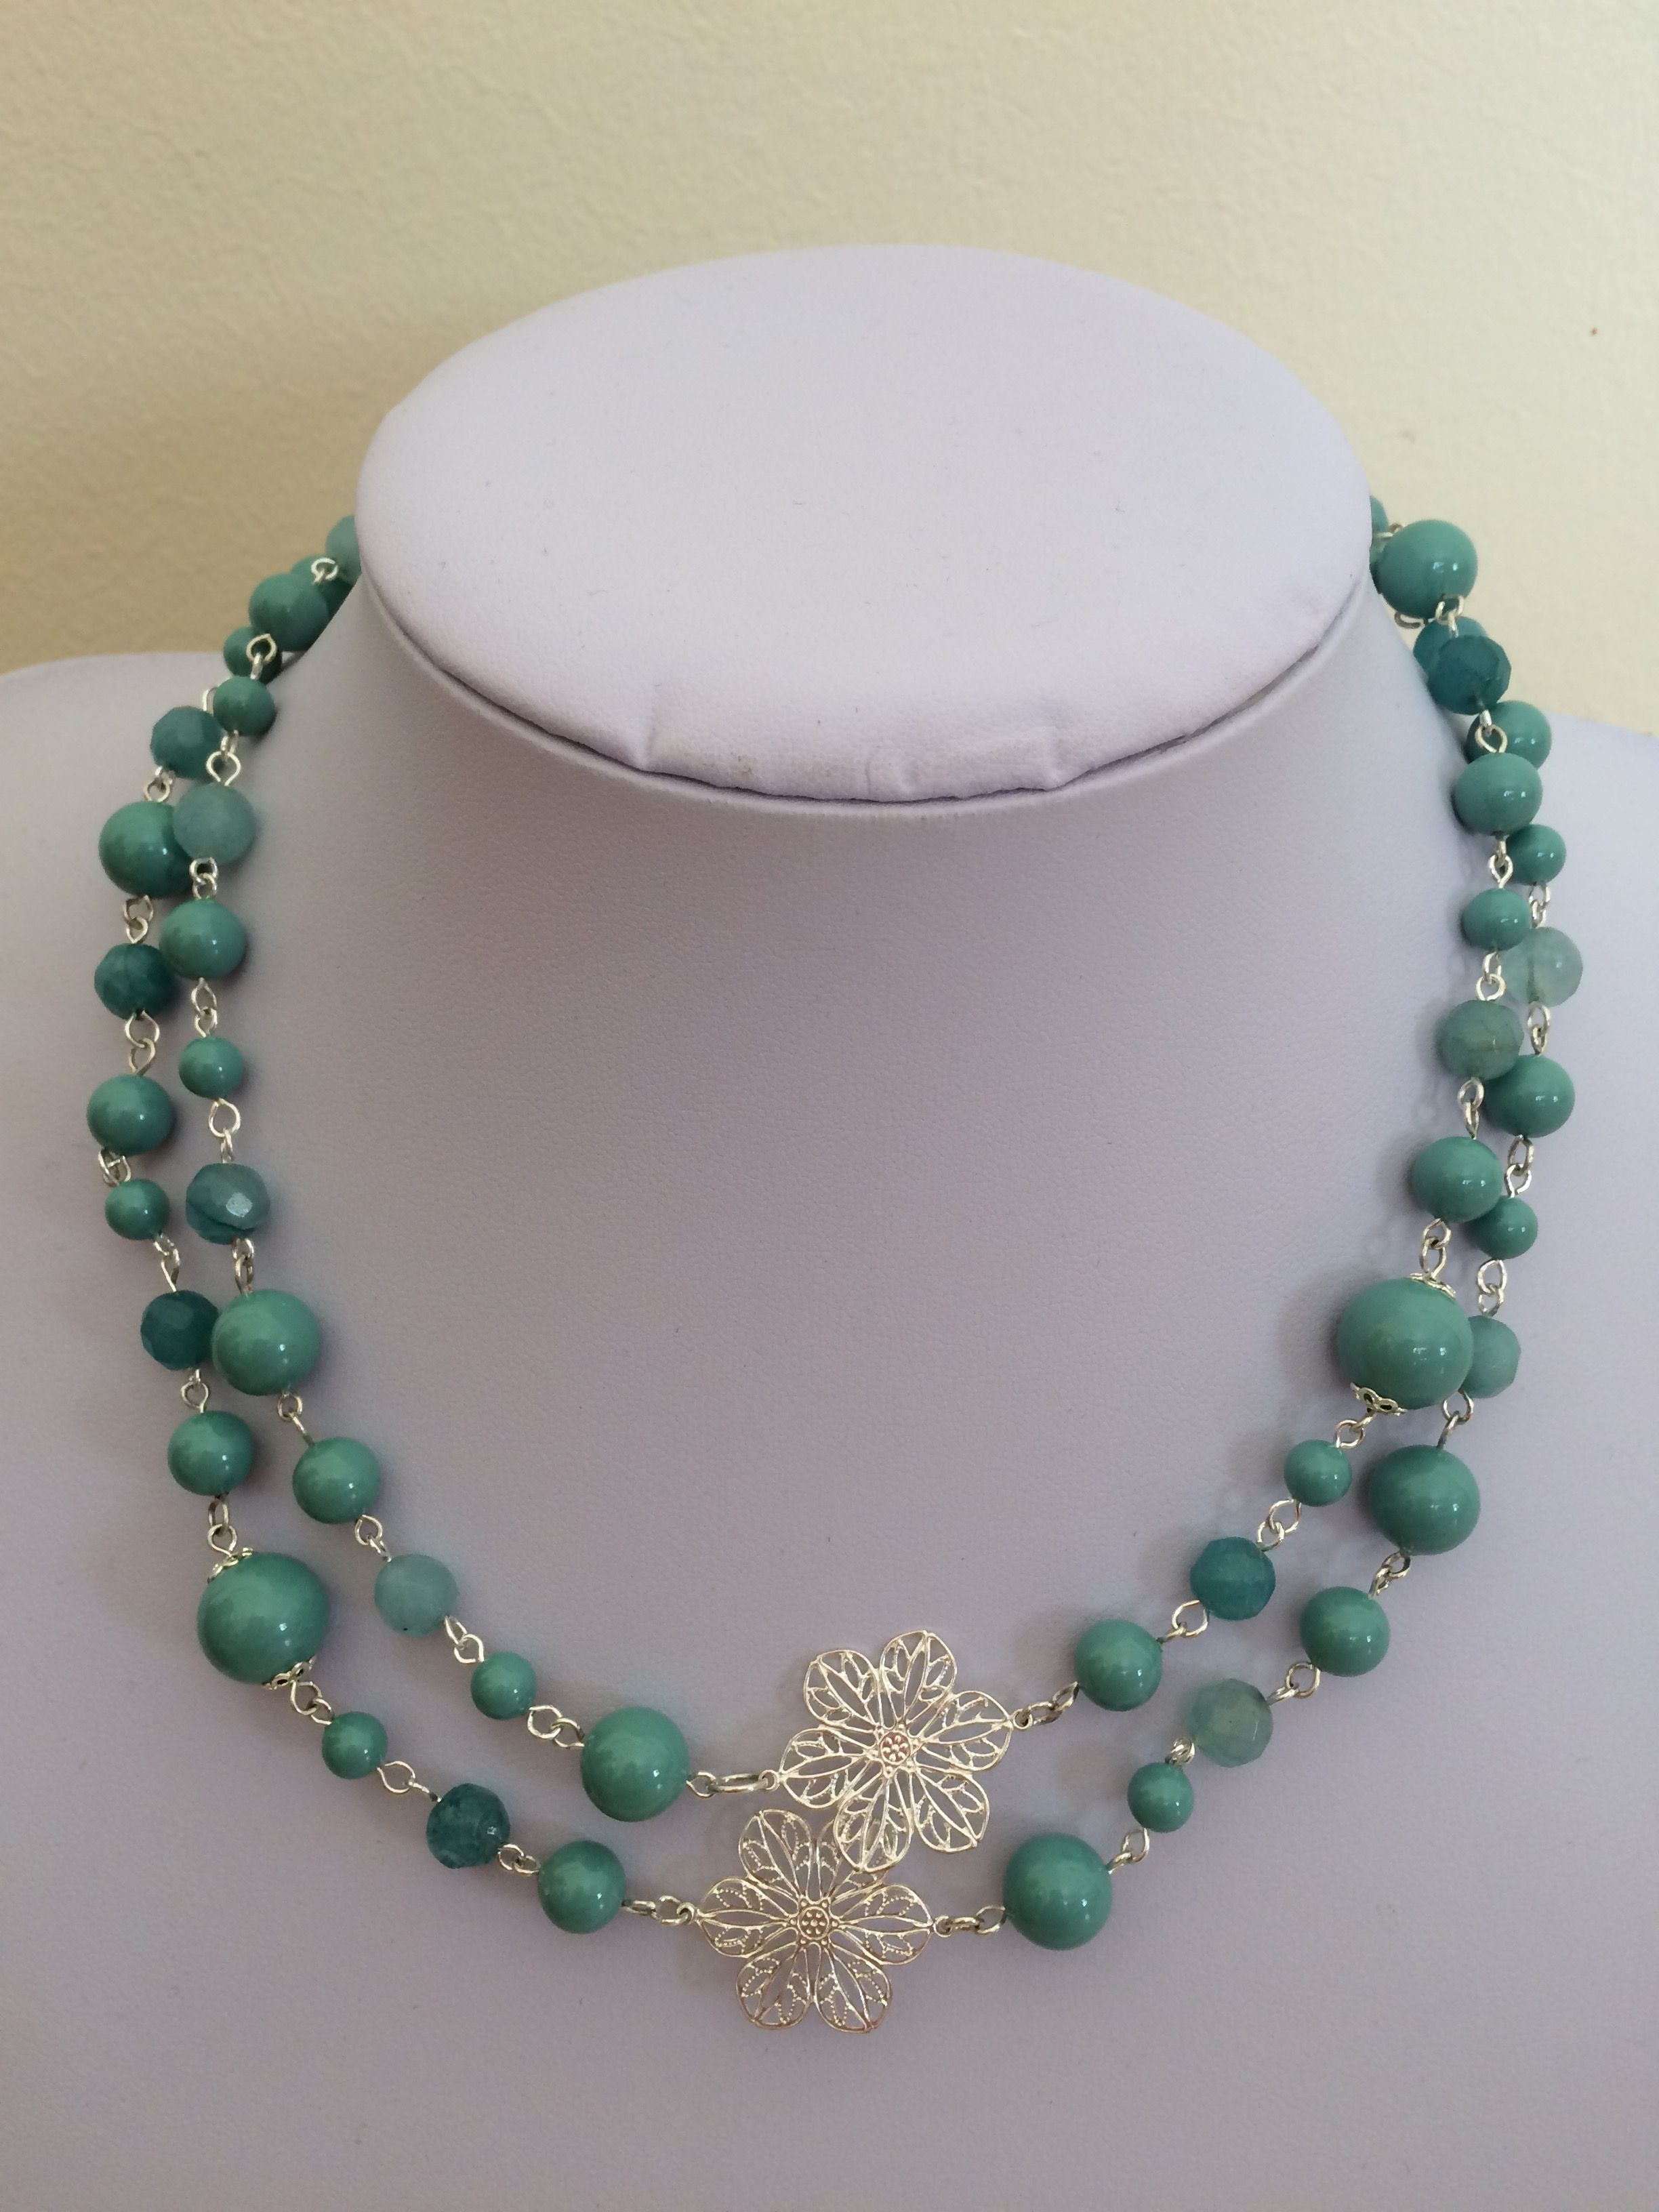 Pin by Luz Jewelry Design on Necklace   Pinterest   Jewelry ideas ...